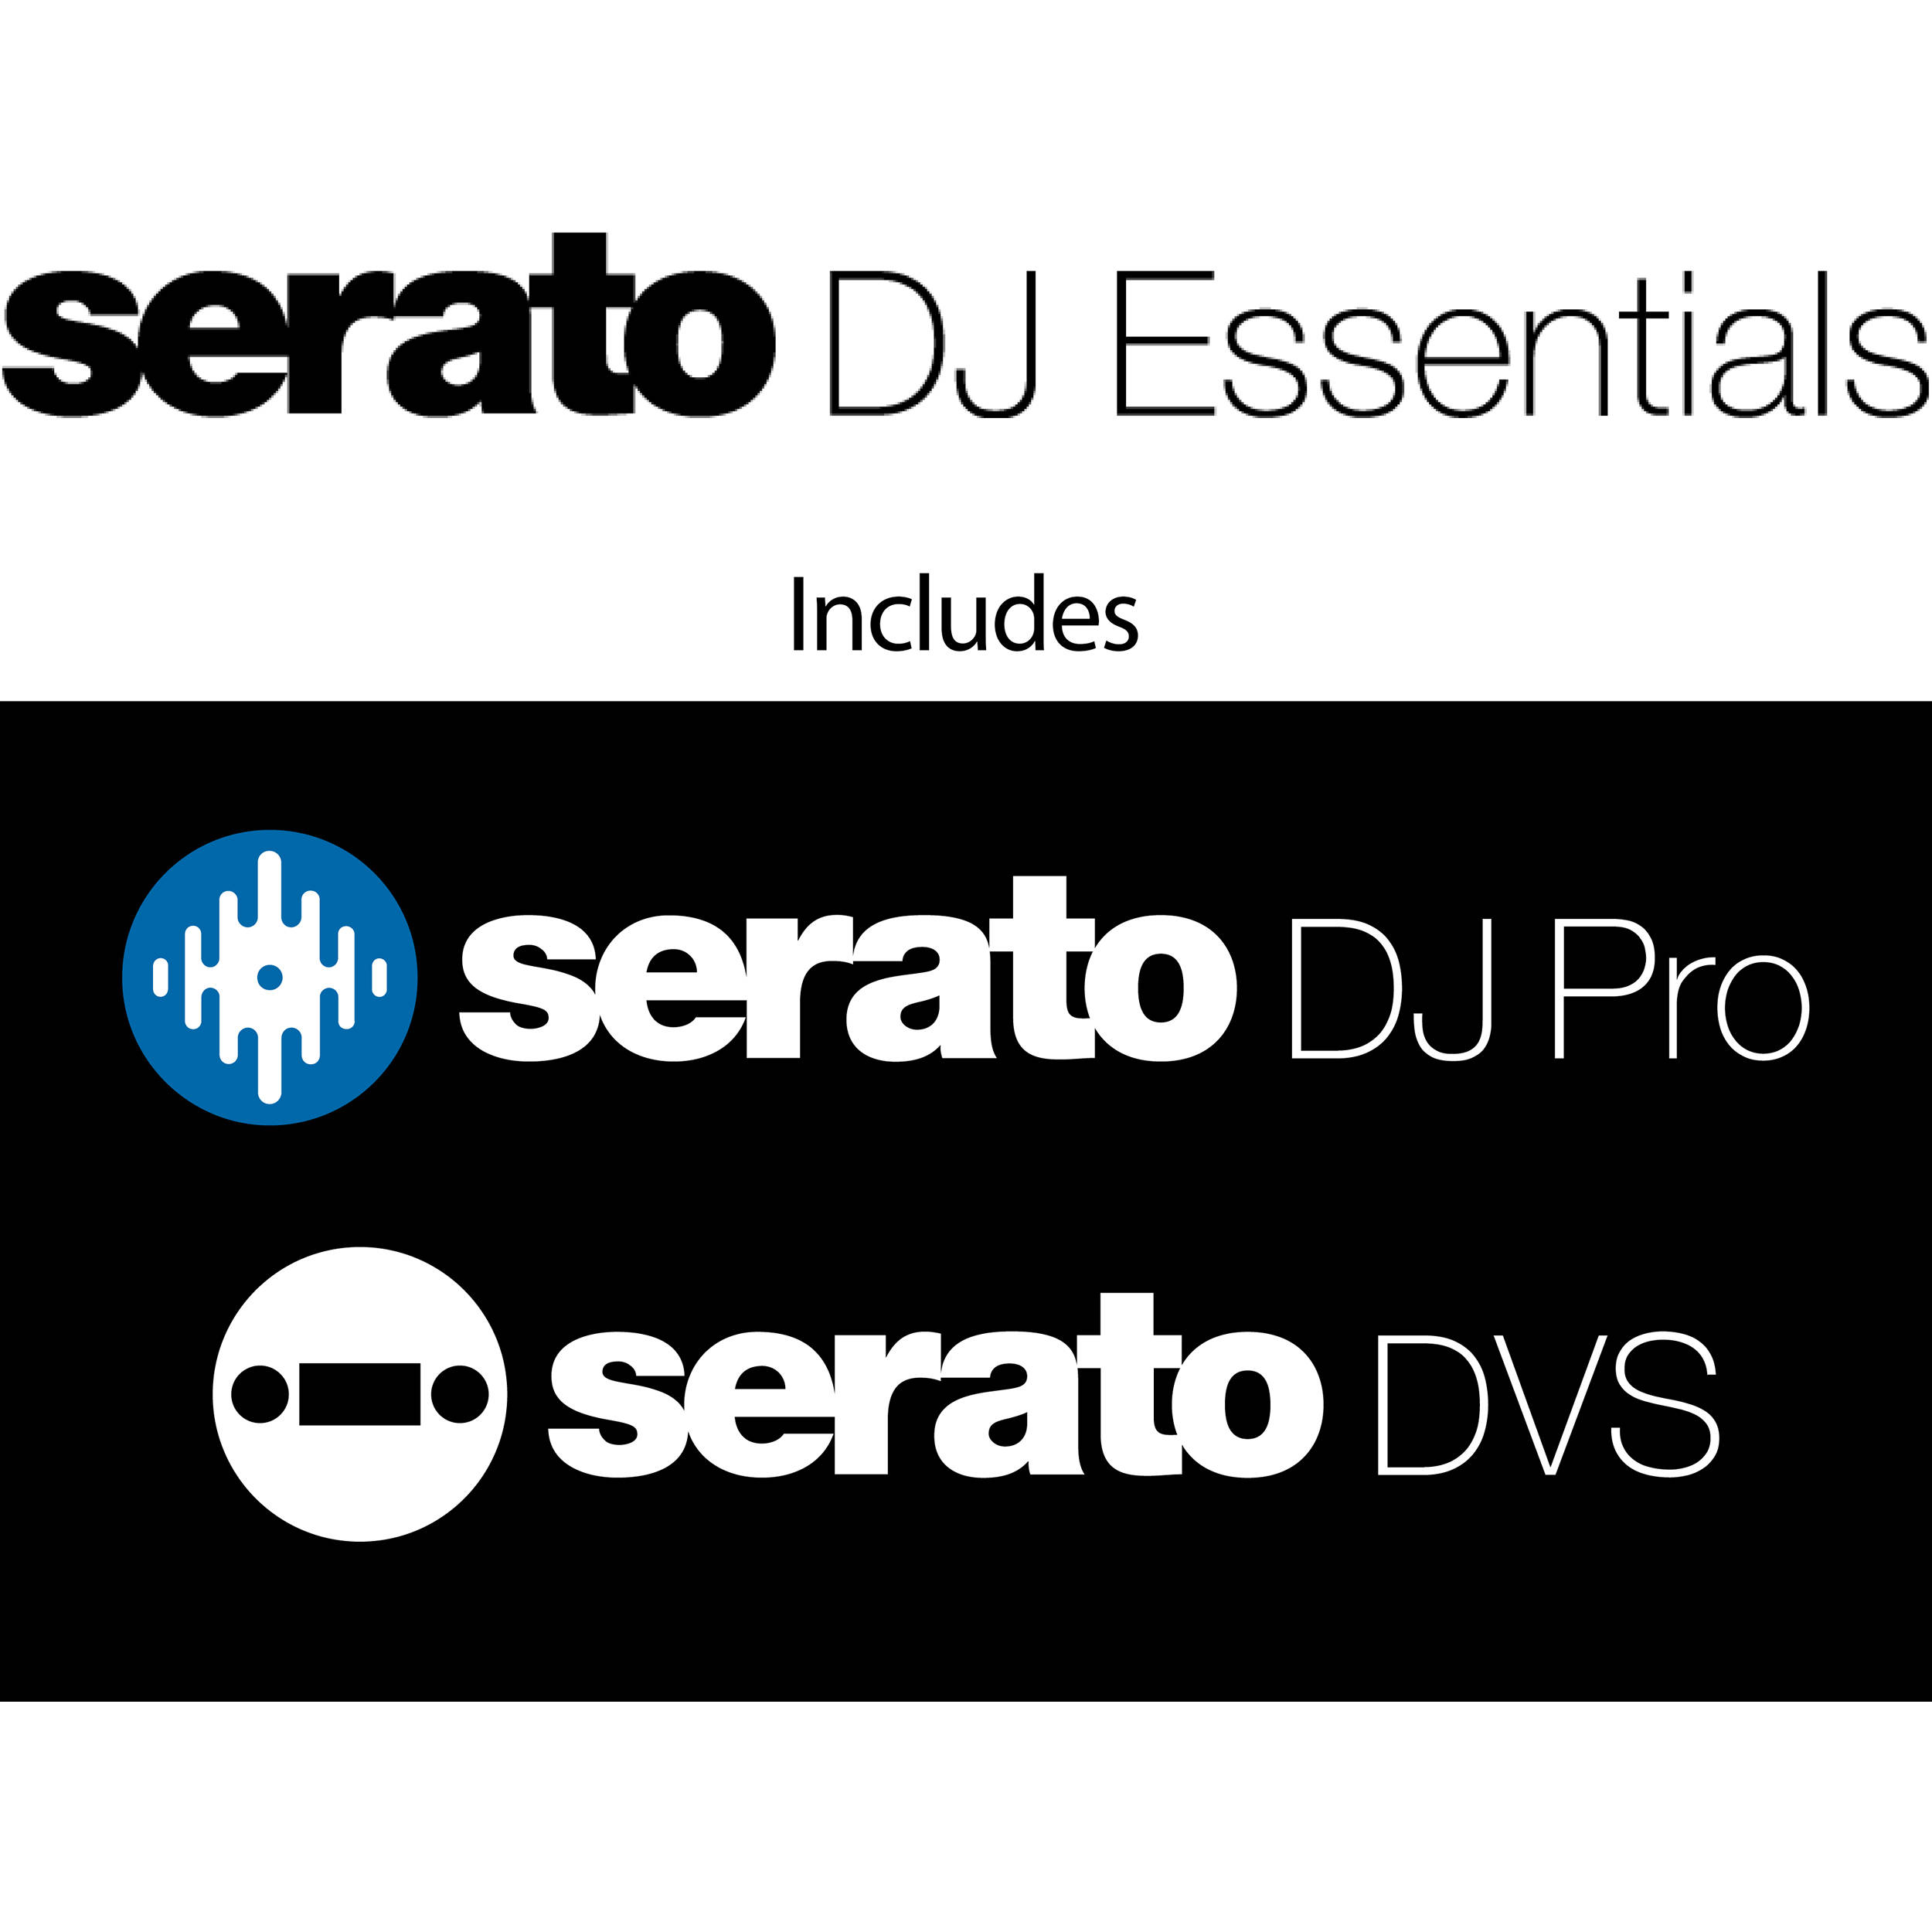 Serato video software download ssw-vd-sv-dl free shipping!